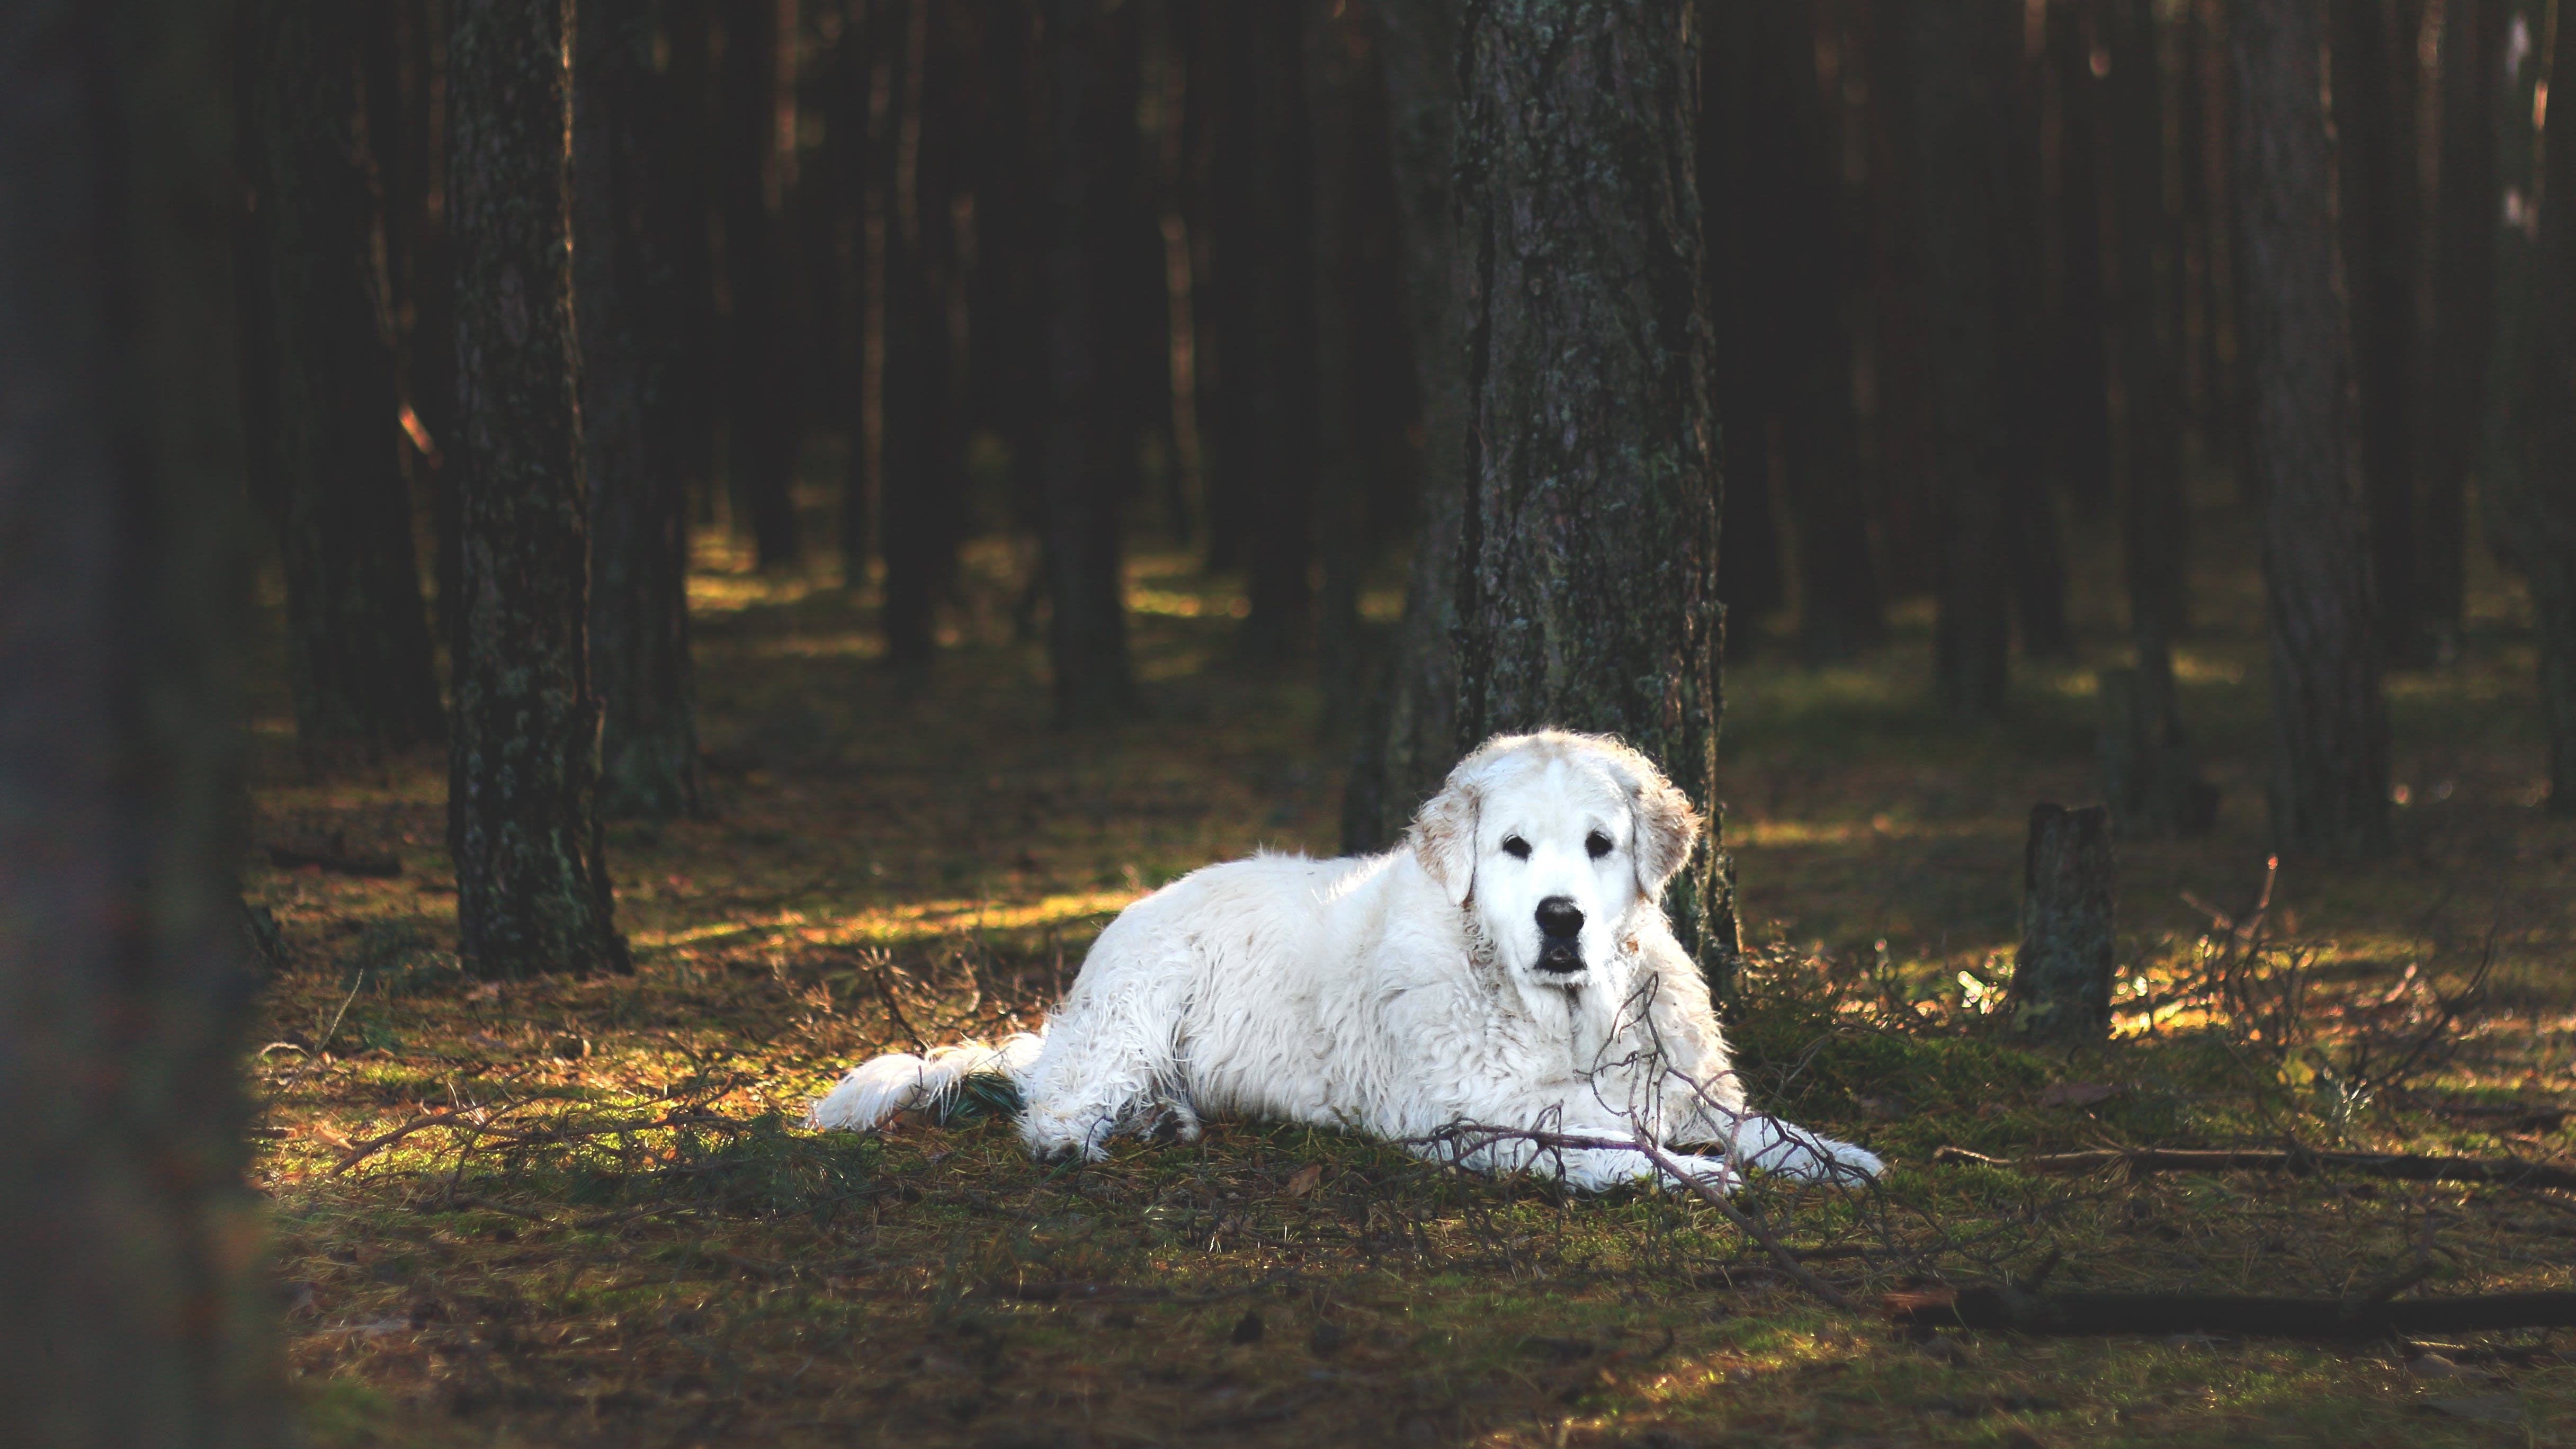 Adult White Kuvasz Laying Down on Floor in Forest